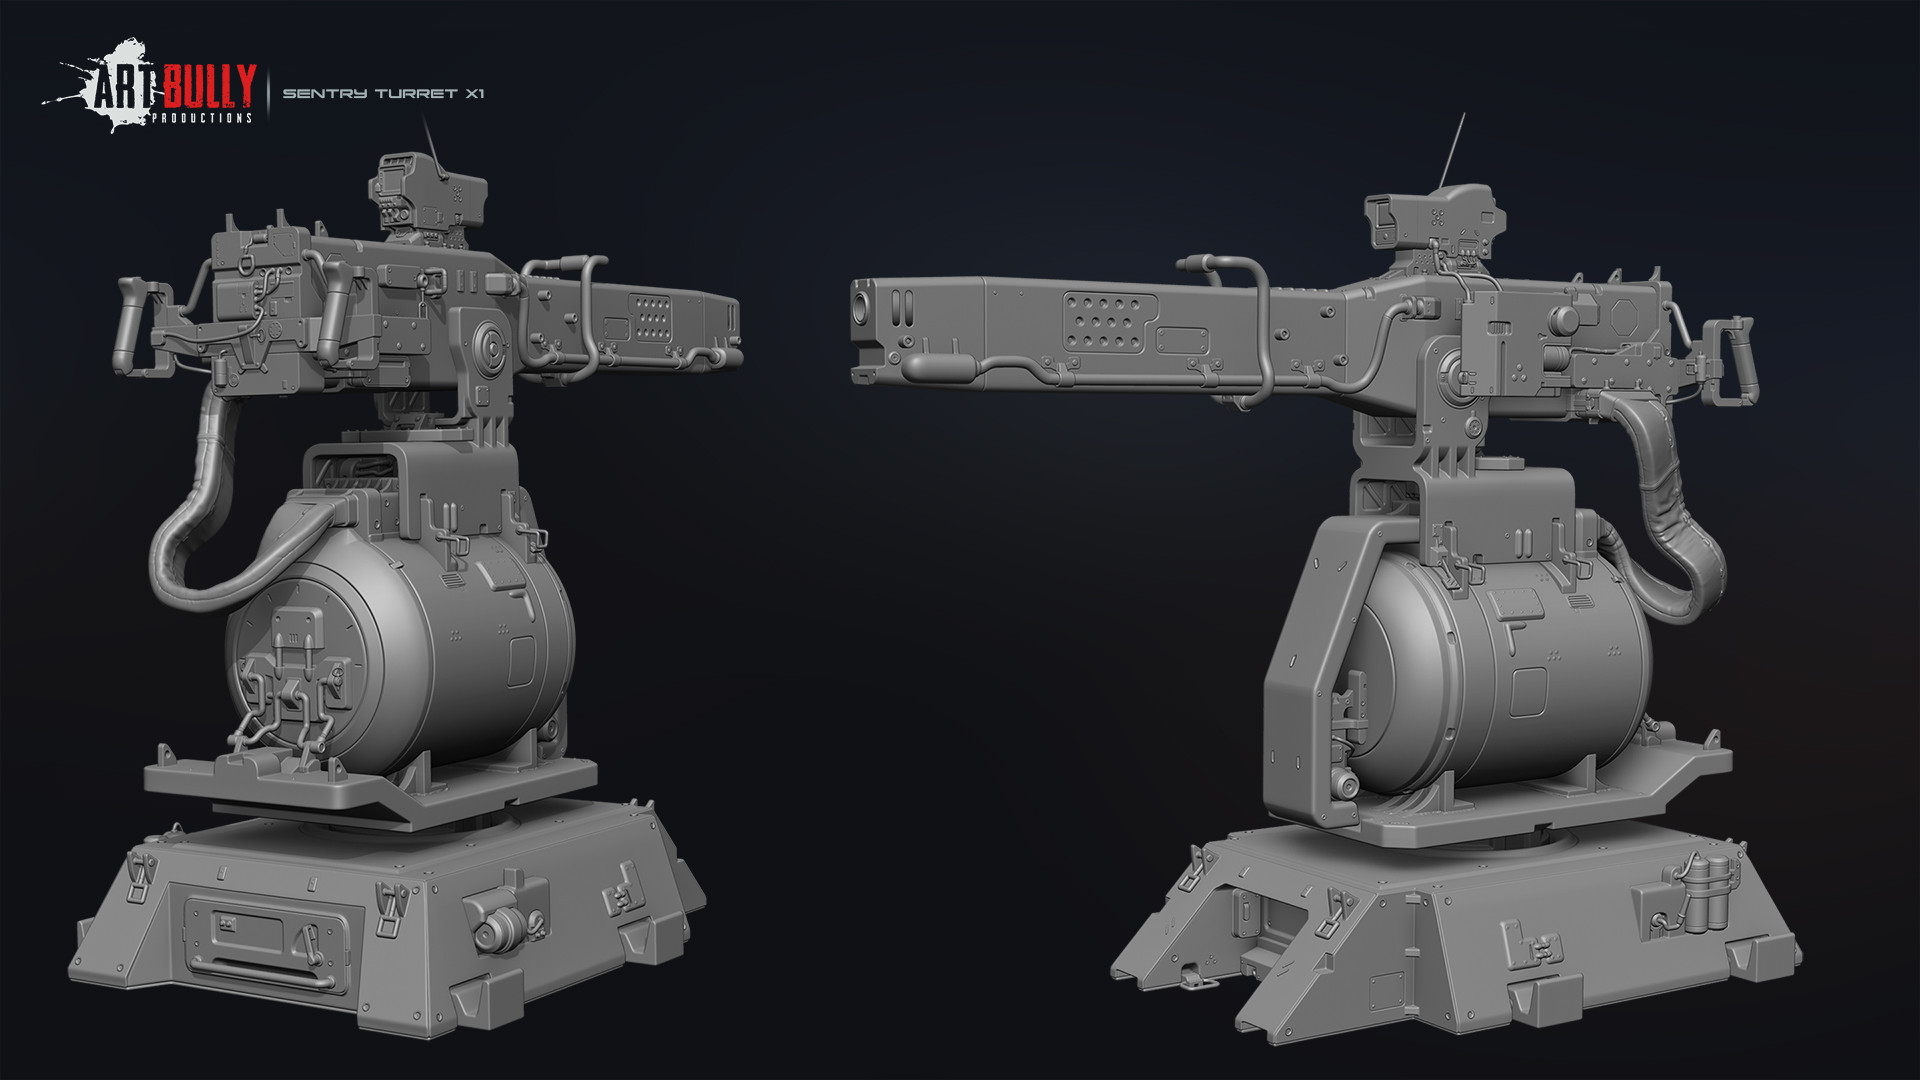 Patrick nuckels sentry turret x1 high 01